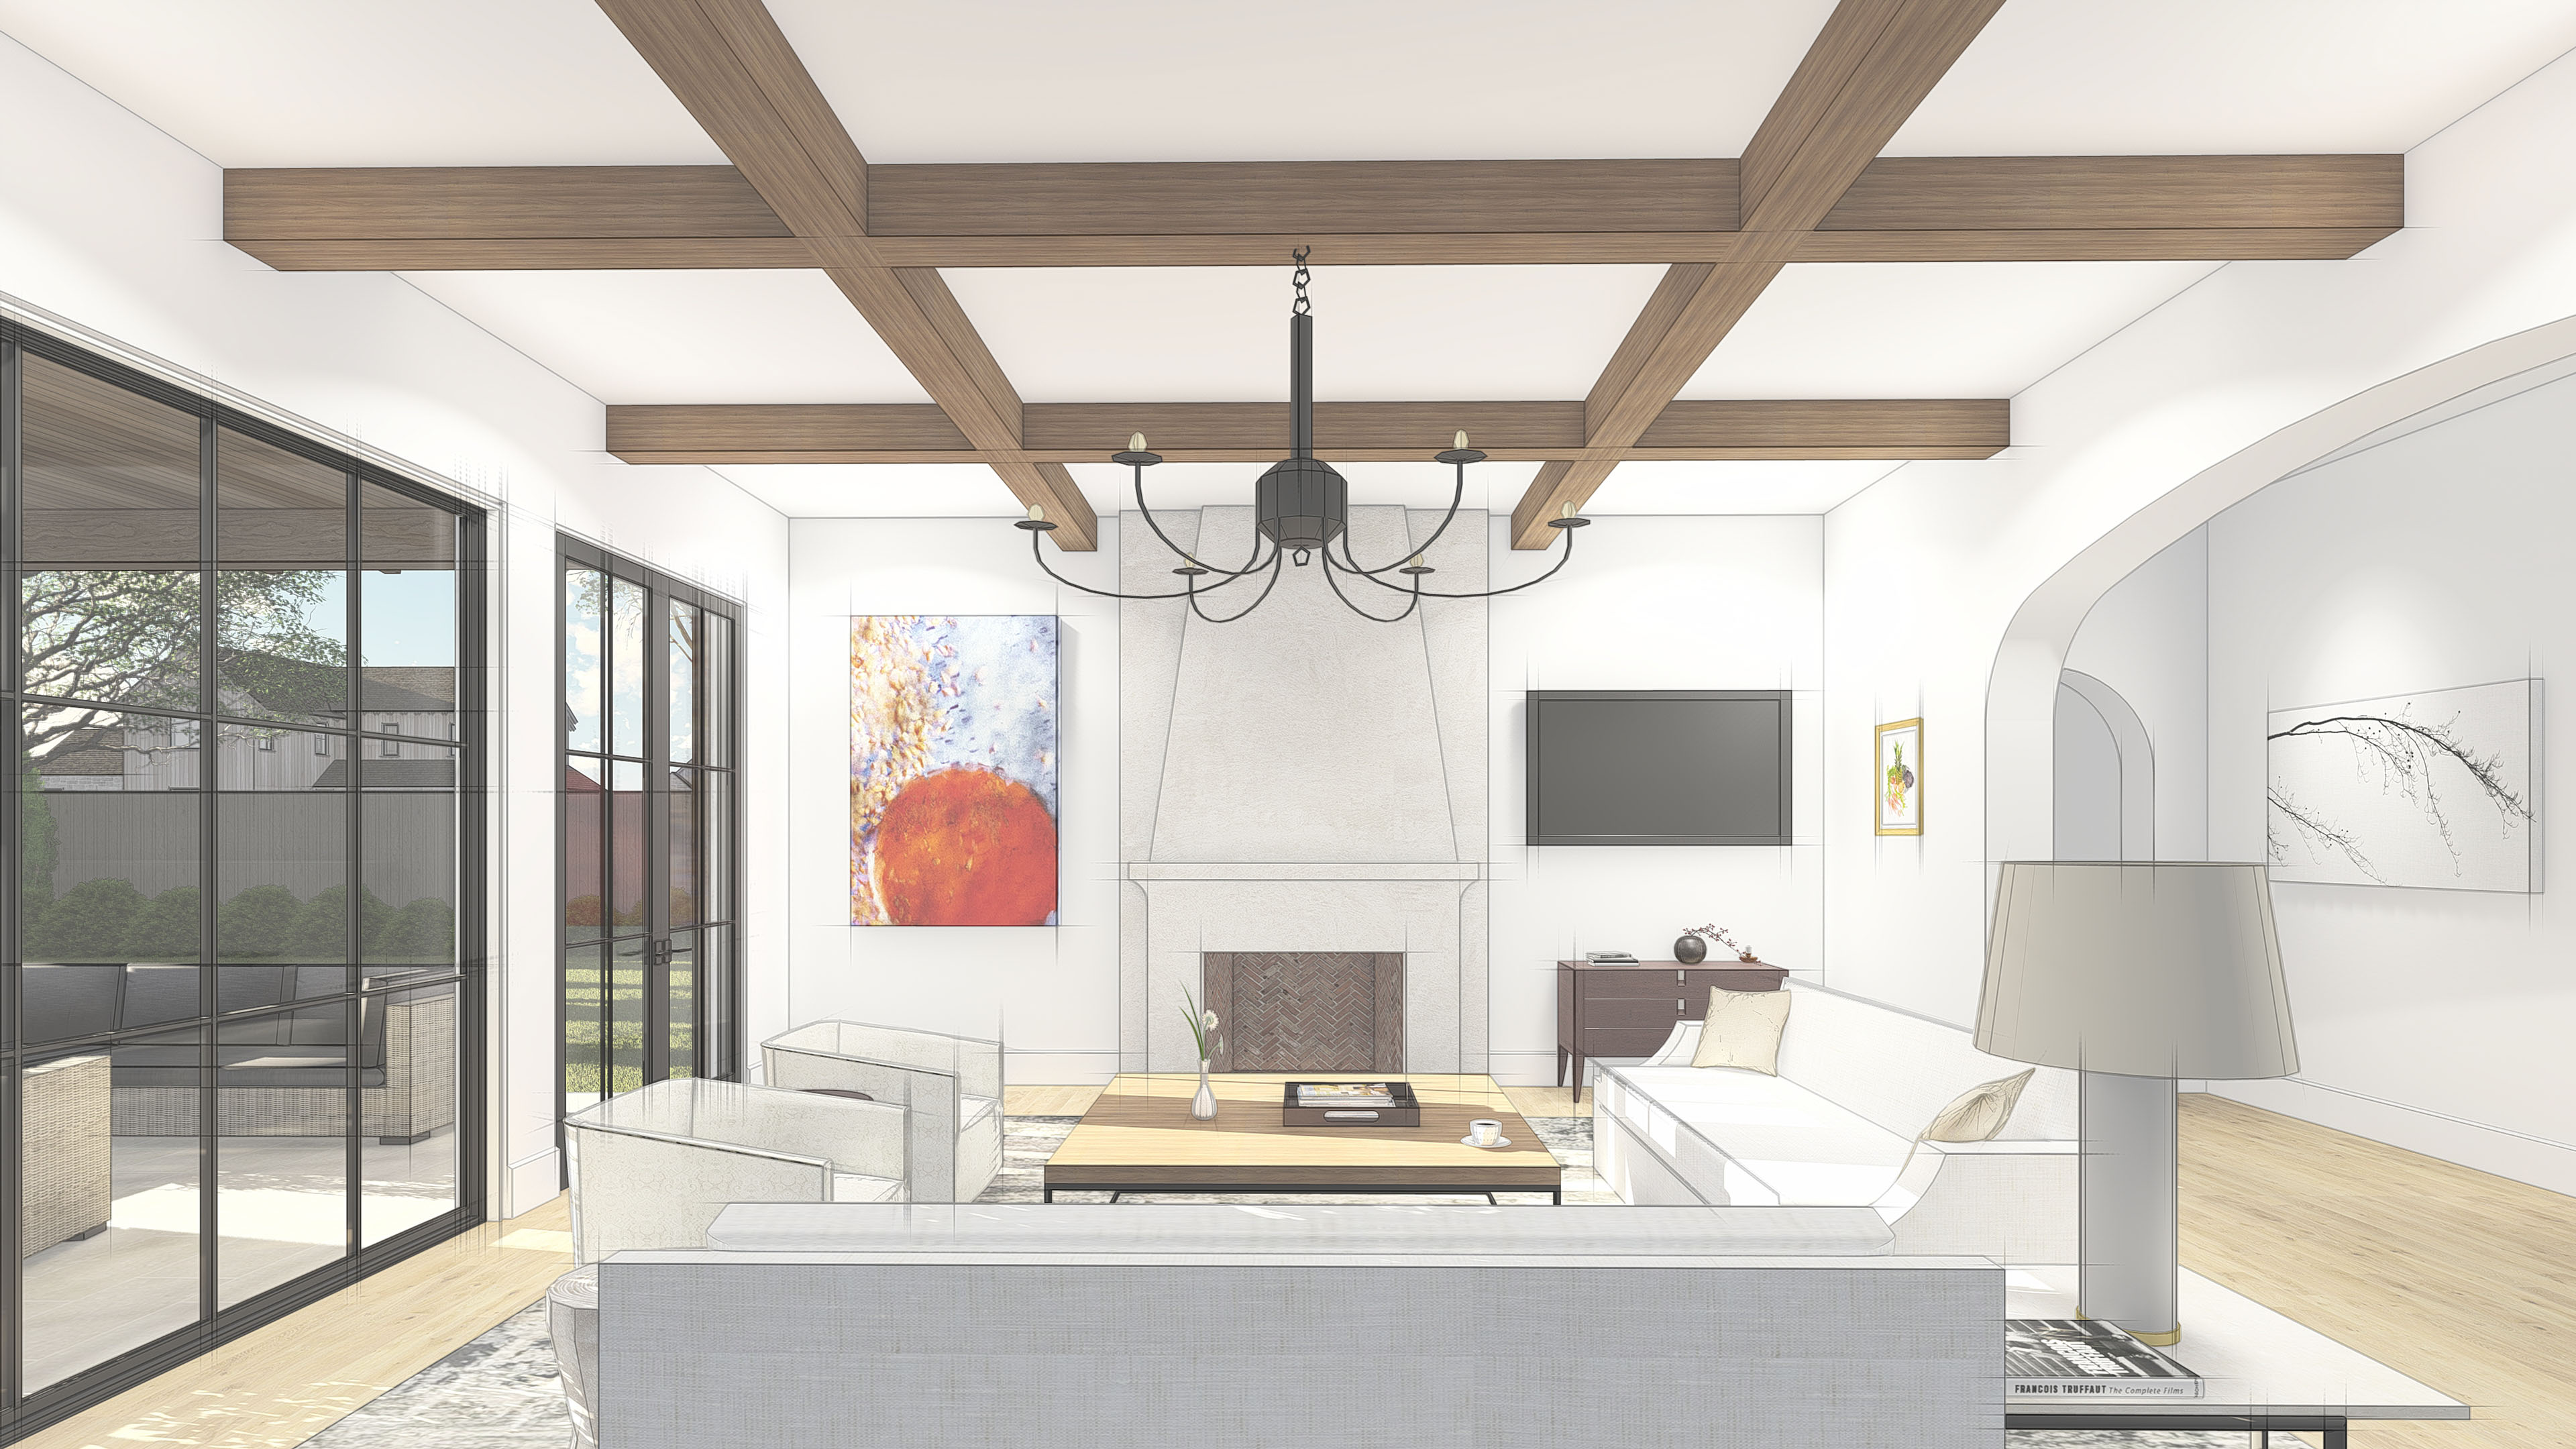 17120_LH Lavendale_Great Room Render